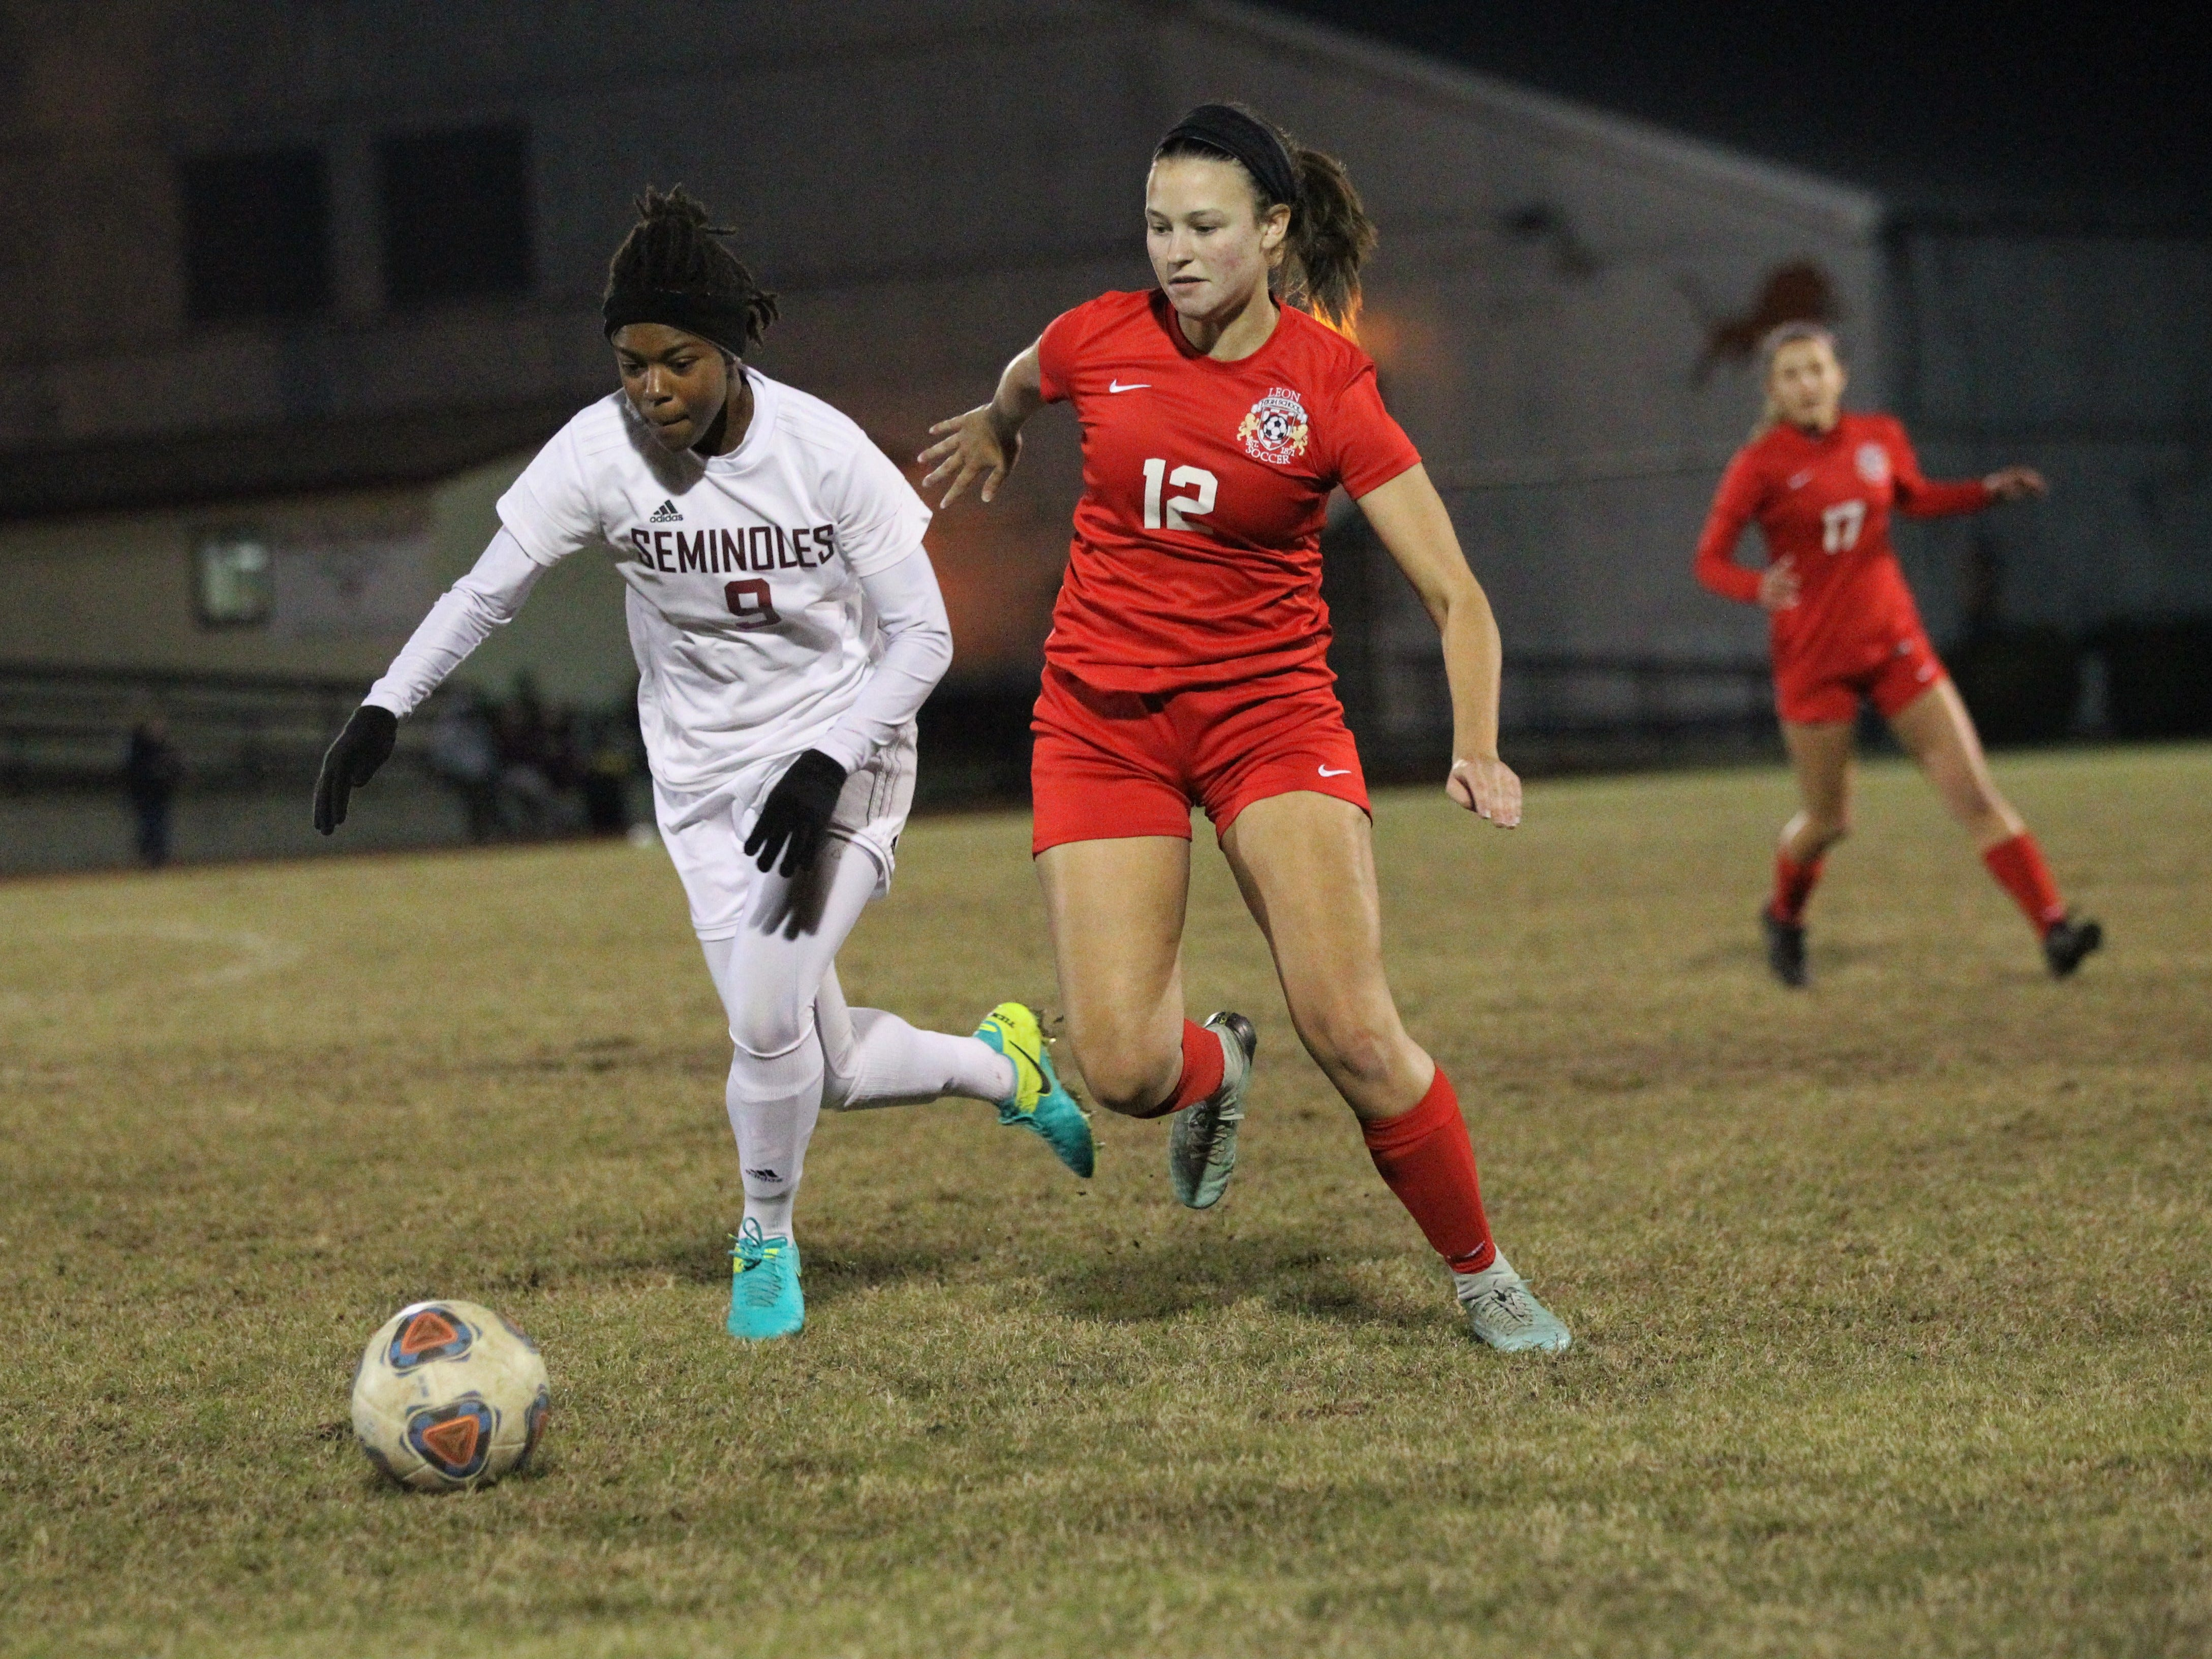 Florida High junior Janae Scott fights for possession against Leon junior Addison Dudley during the Seminoles' 3-2 win at Leon on Jan. 21, 2019. Scott scored two goals in the win.